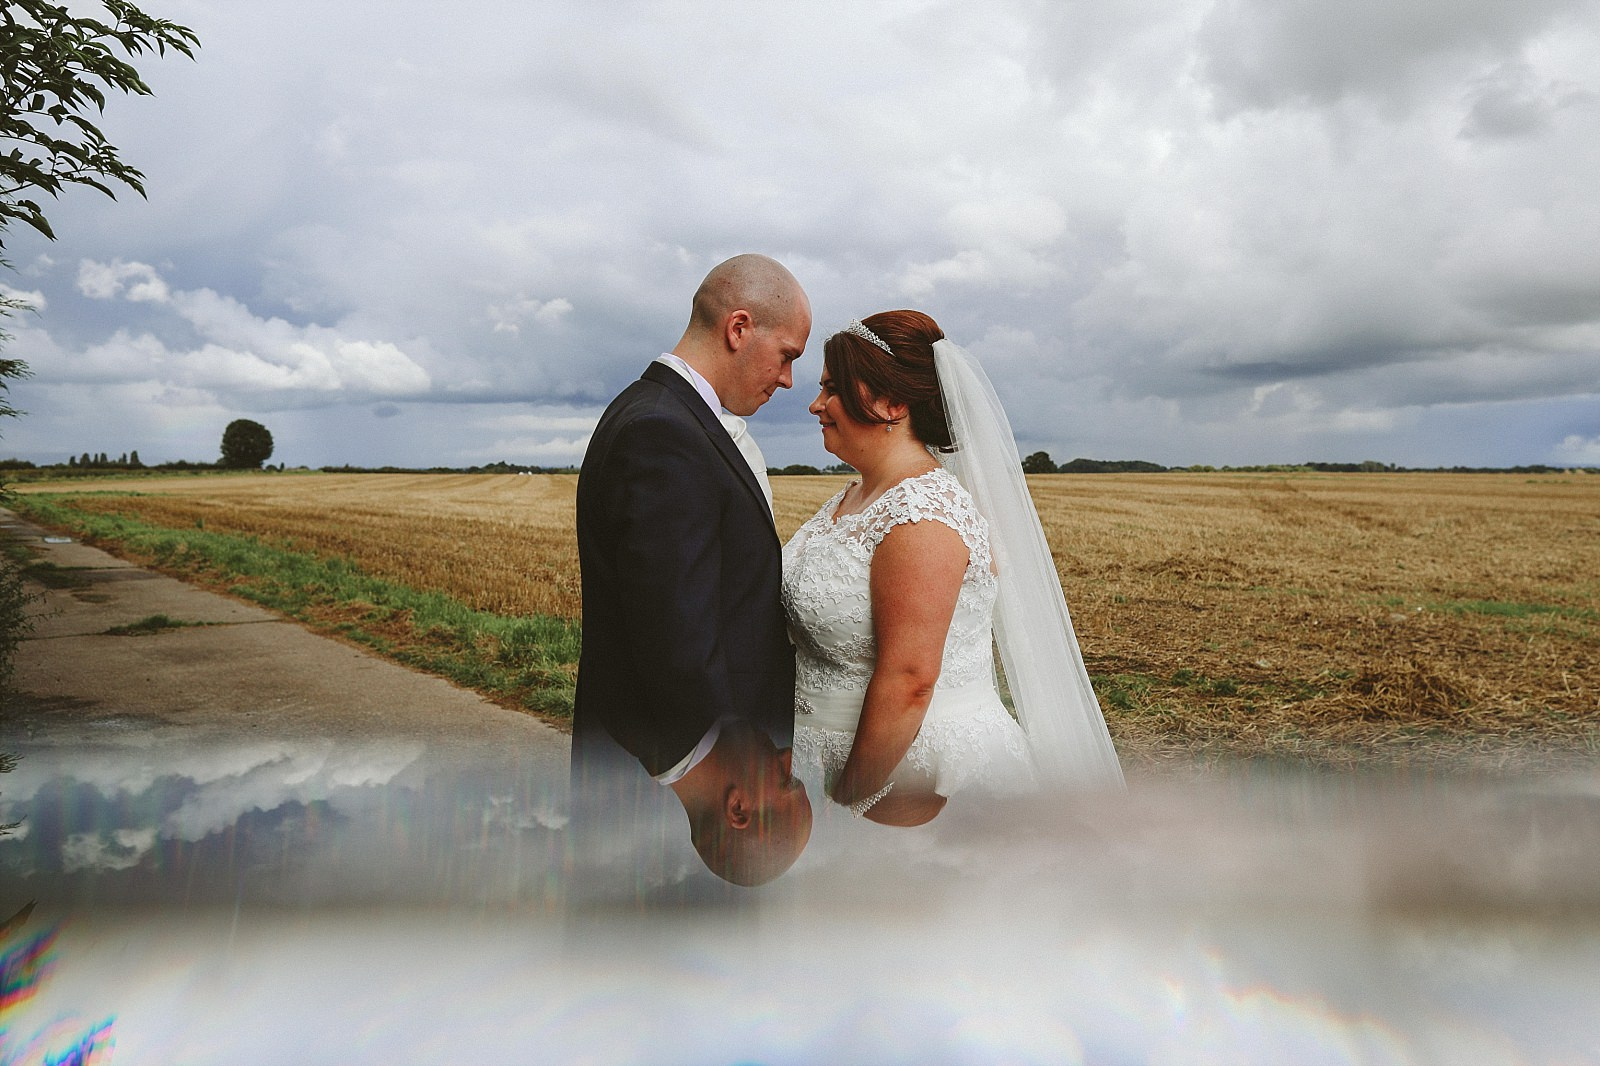 Wedding photographers in warrington InUkLocal More than a Business Directory